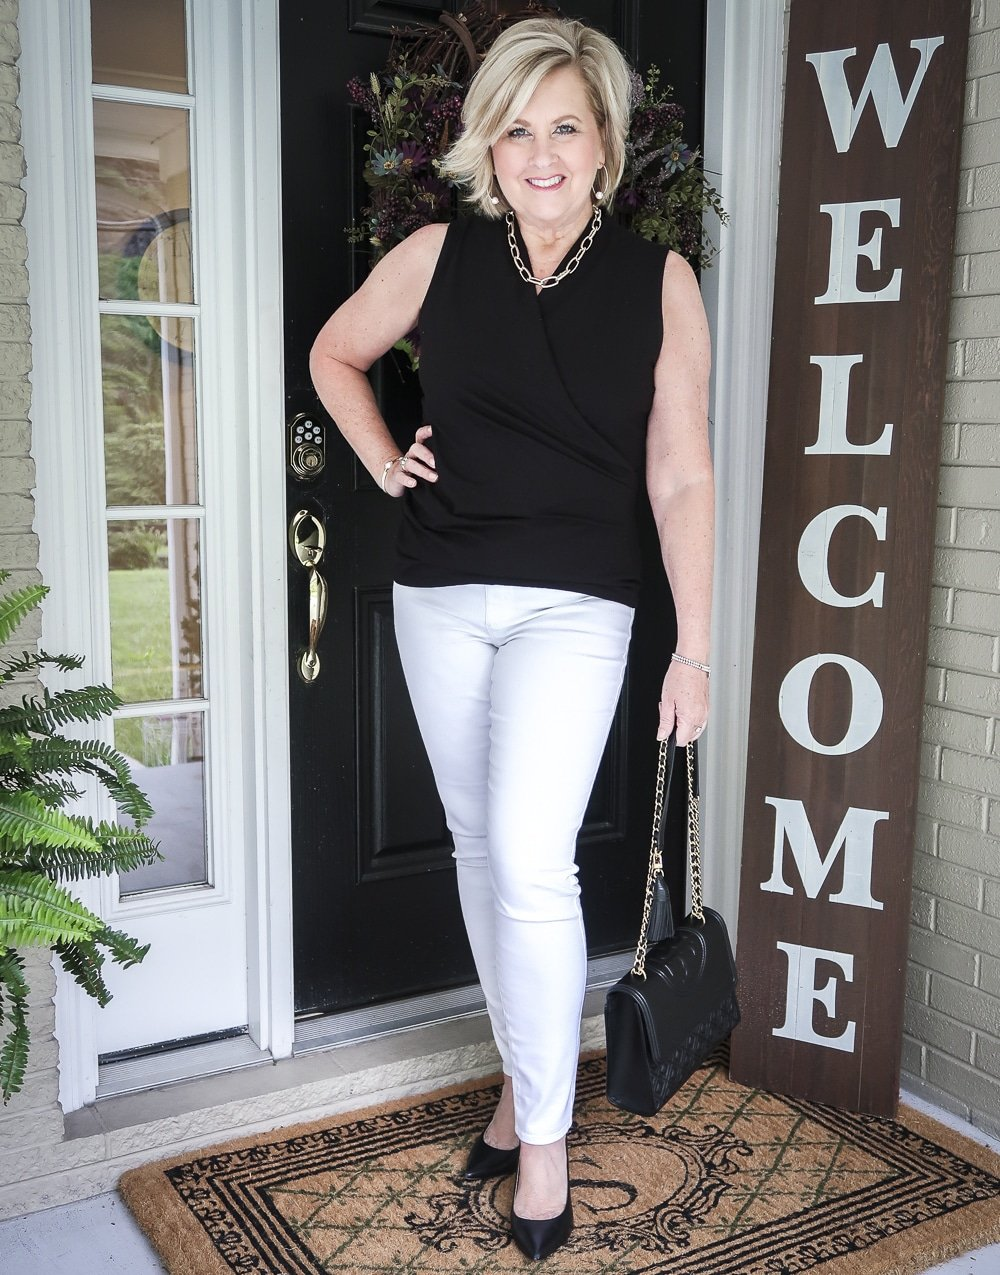 Fashion Blogger 50 Is Not old is wearing a black faux wrap top with white No Stain jeggings, classic black pumps and carrying a black shoulder bag